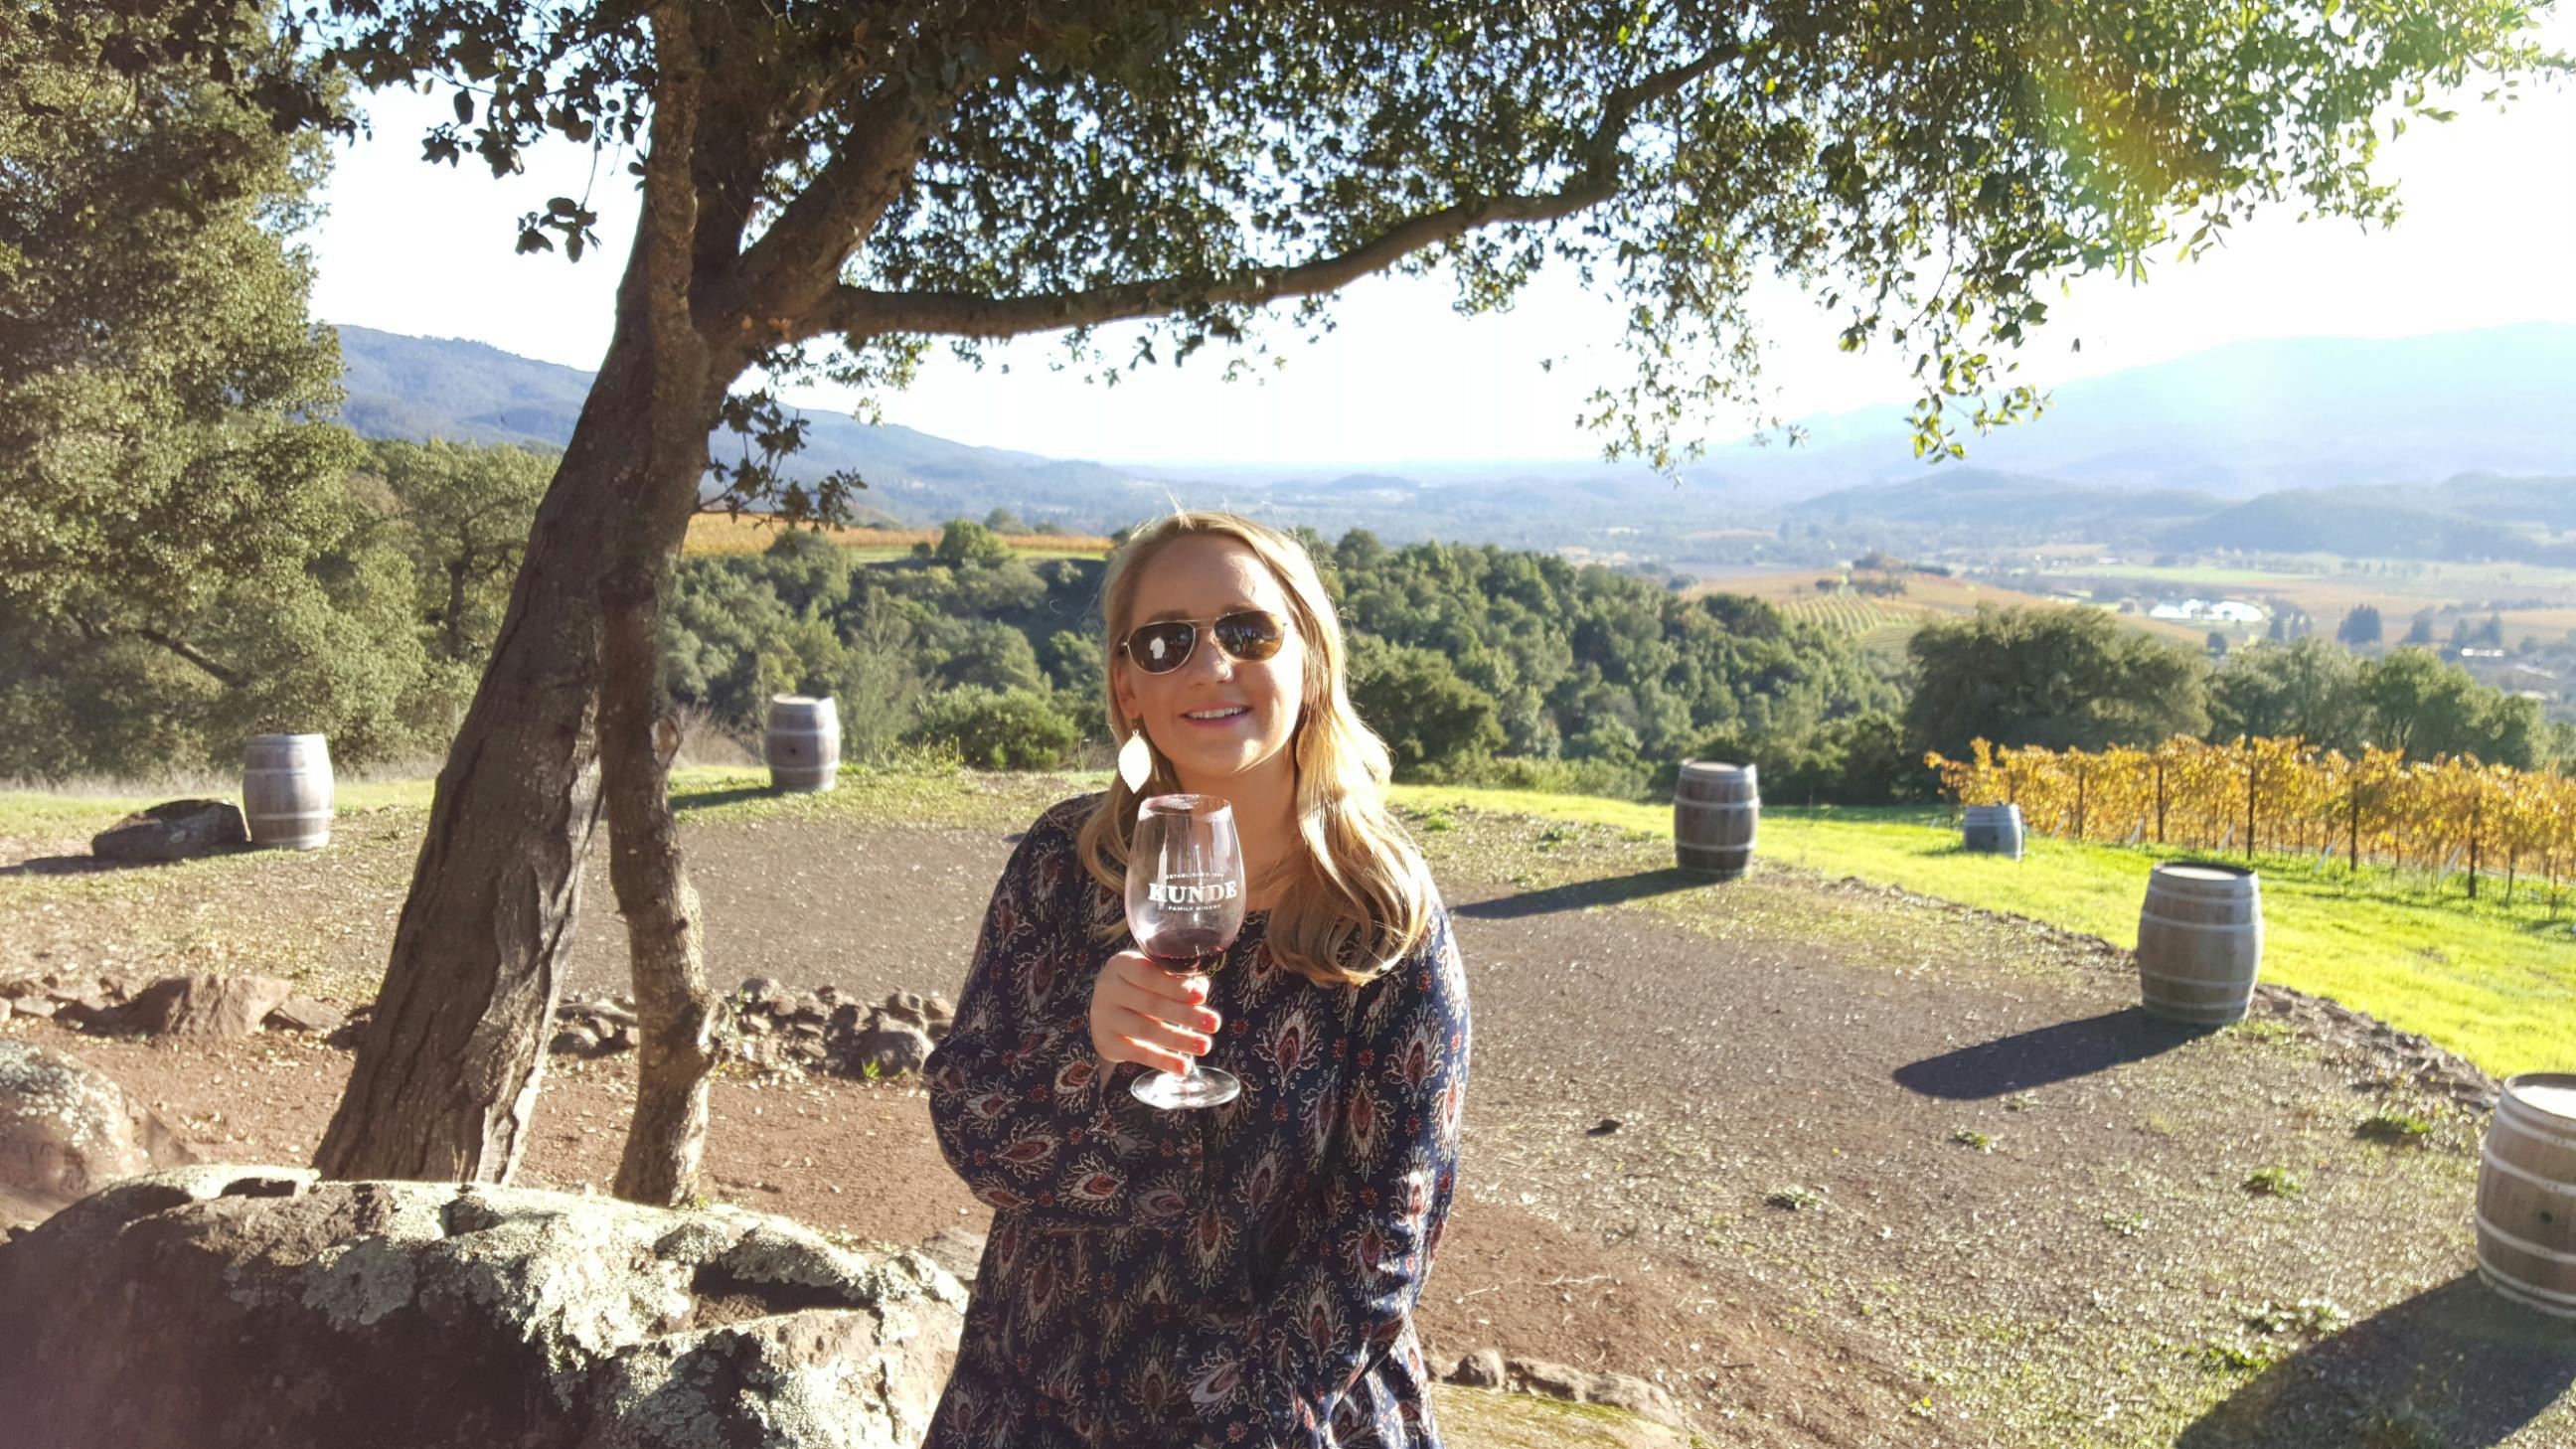 Sonoma Weekend Plan - Sonoma Vacation - Kunde #Sonoma #SonomaVacation